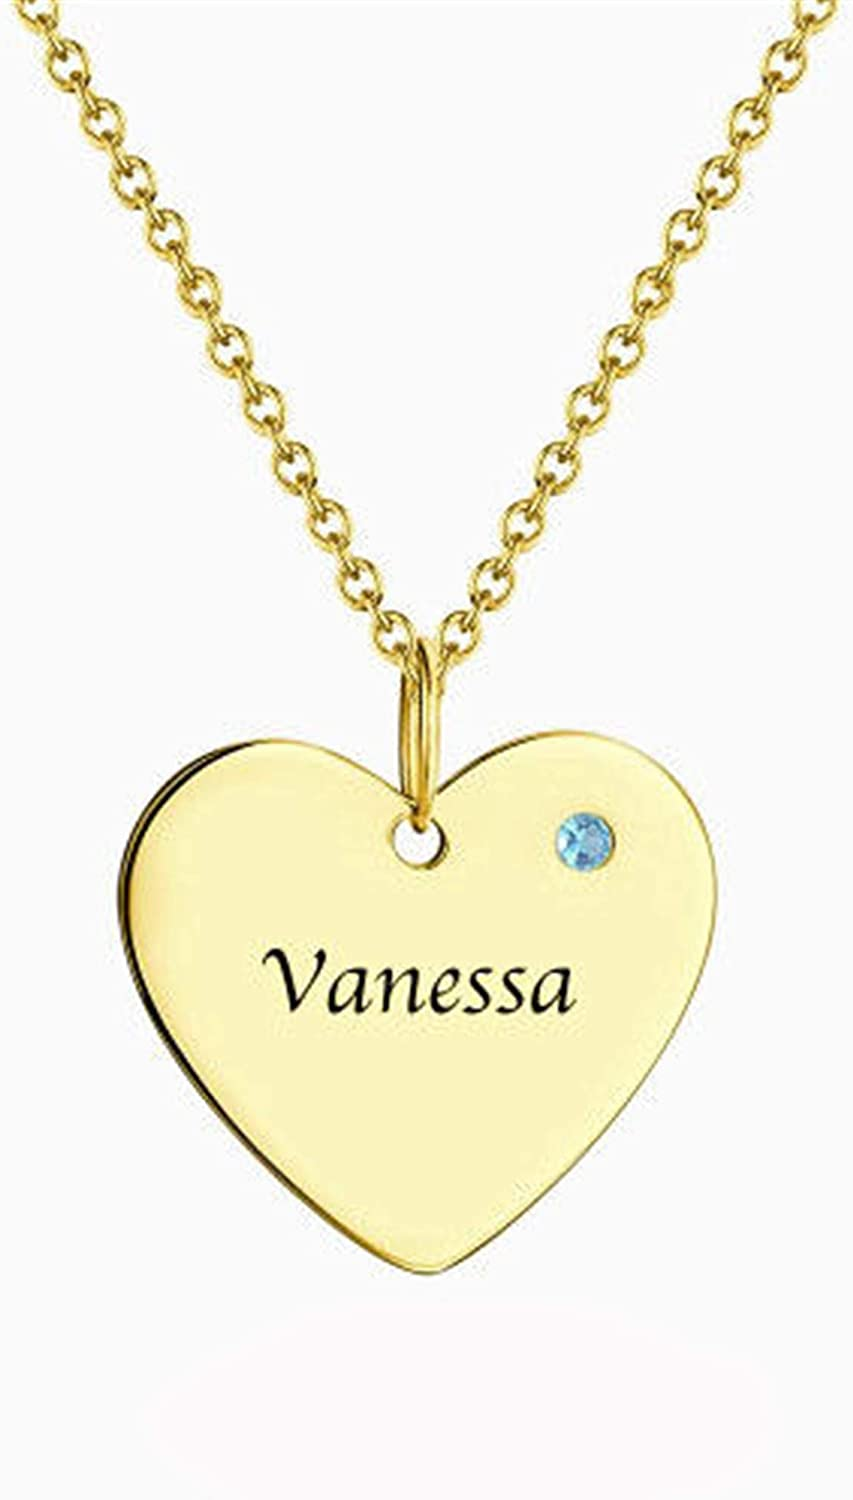 Sterling Silver Personalized 2 Names Simulated Birthstones Necklaces 2 Couple Hearts Name Engraved Pendants for Women 1 Name-1 Birthstone-1 Heart, 22